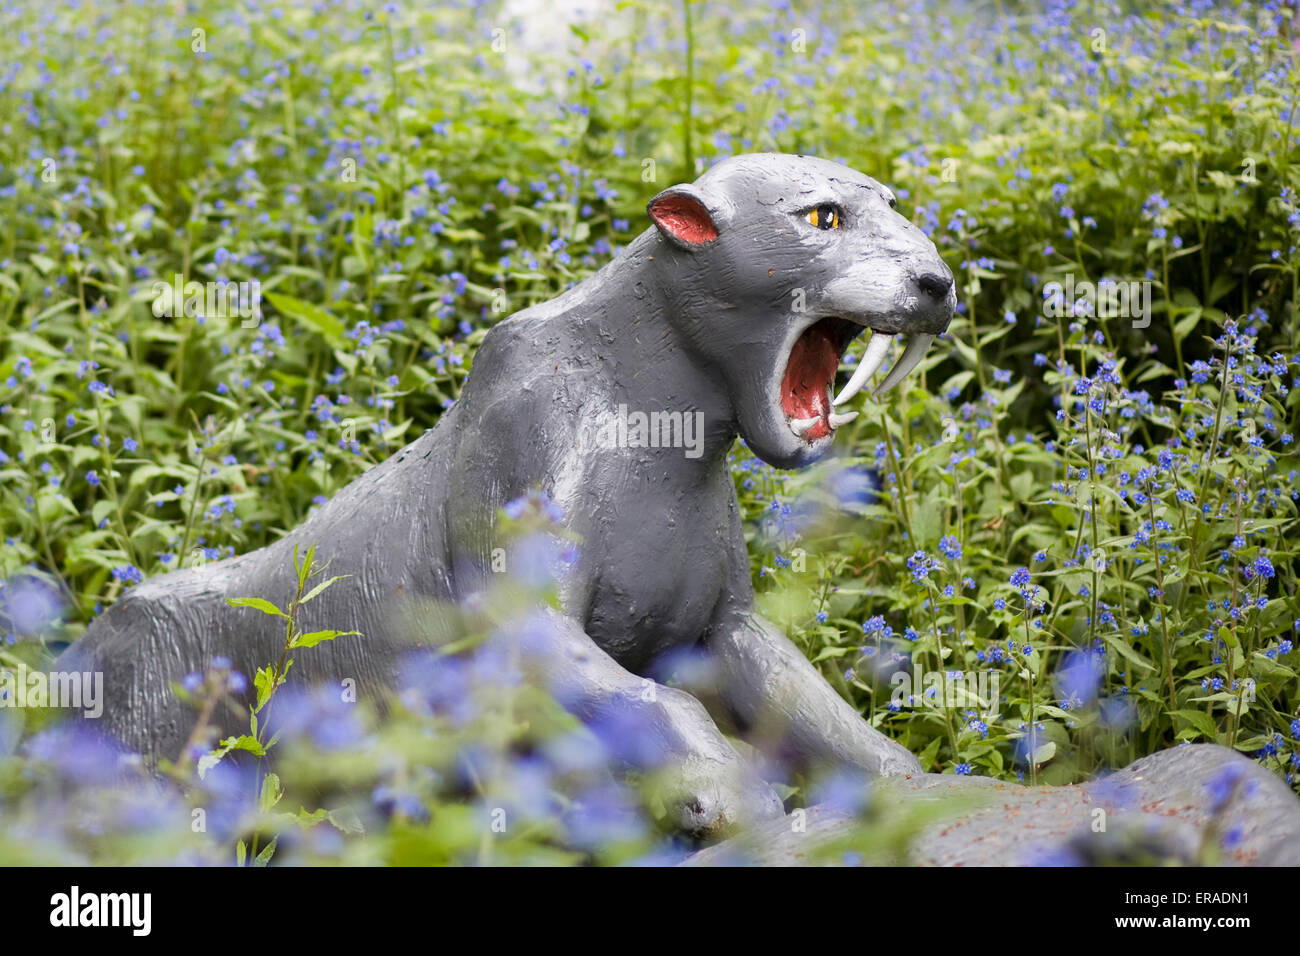 Dinosaur Statue, saber-toothed cat - Stock Image